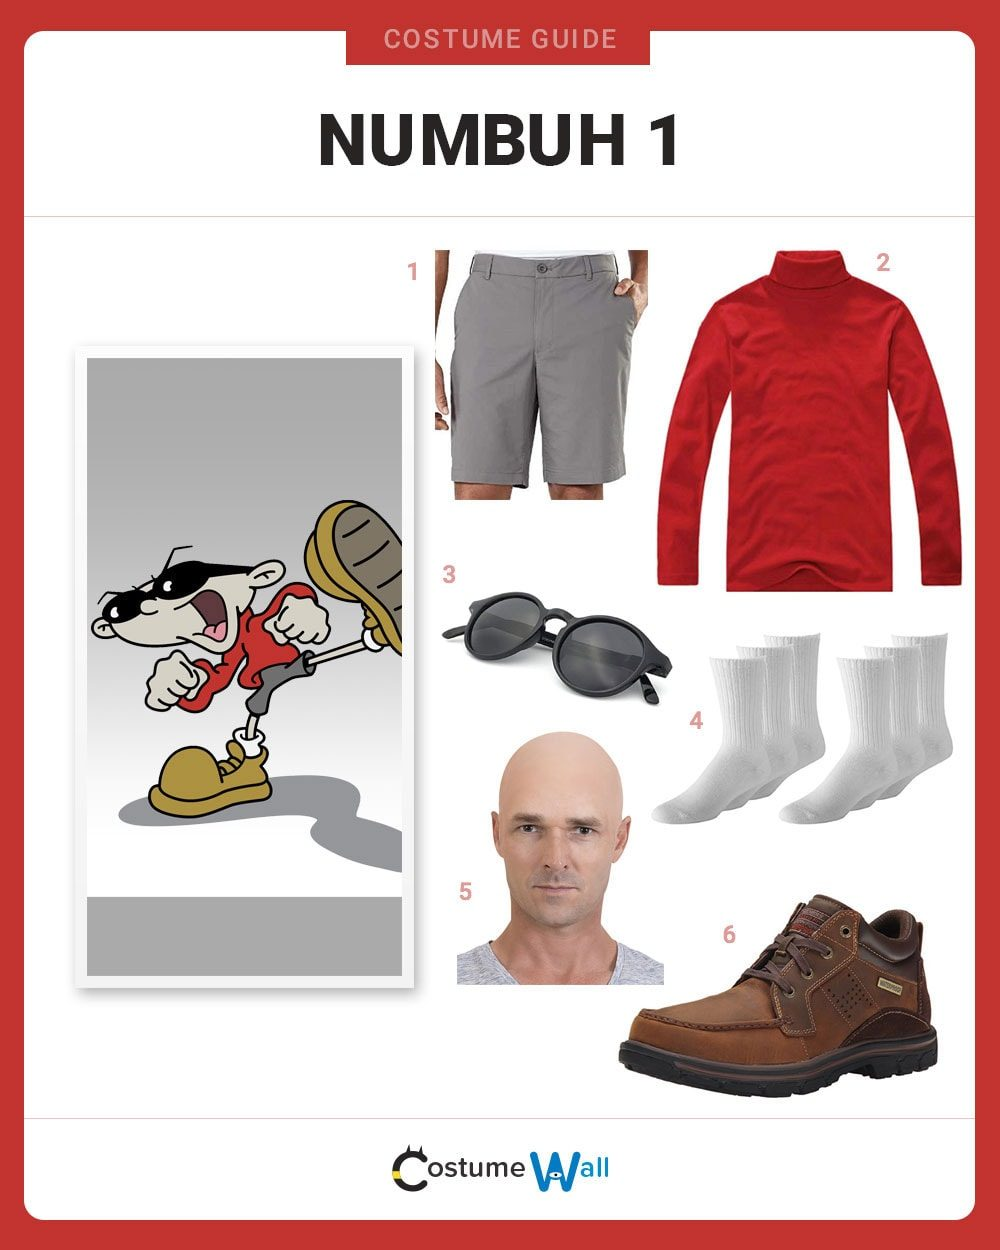 Numbuh 1 Costume Guide